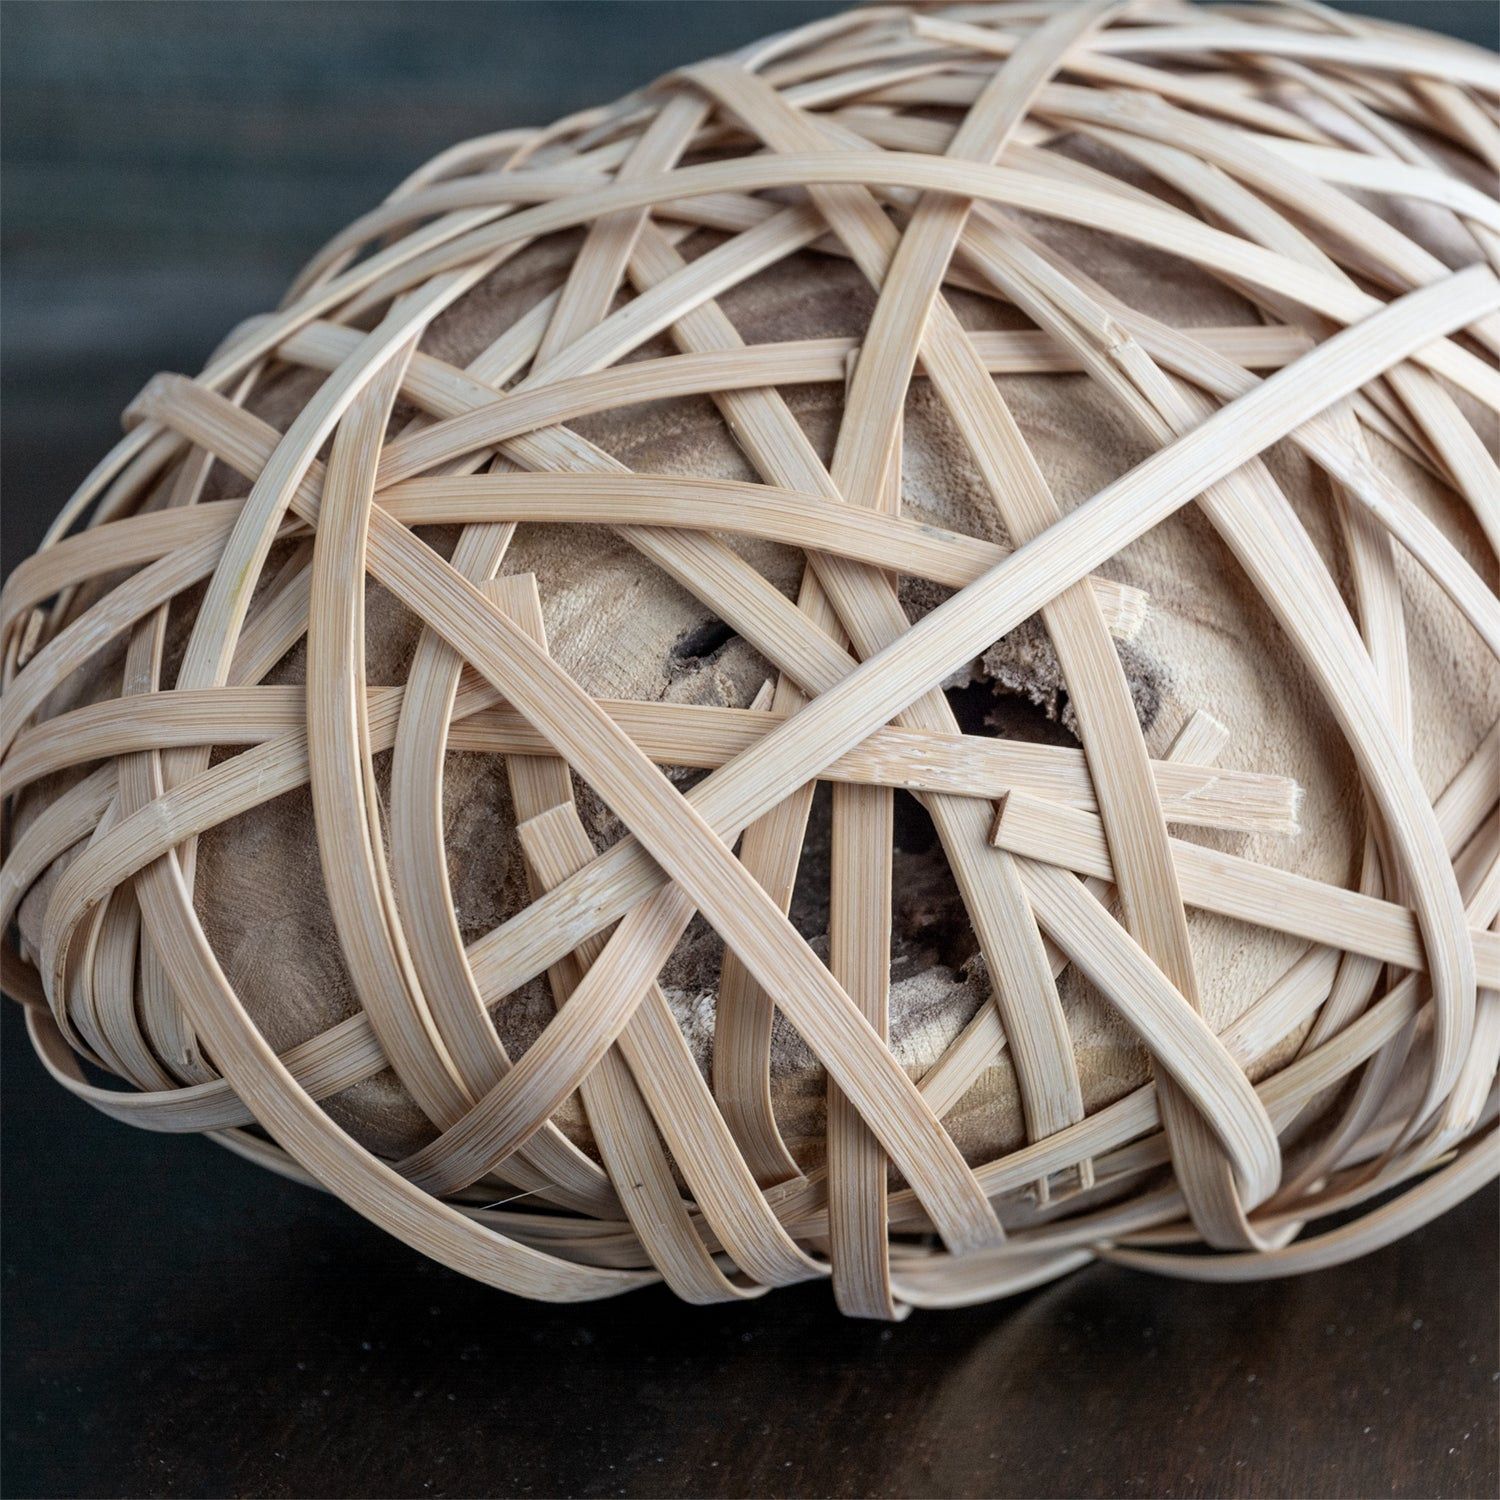 Bamboo & Wood Sculpture, LG